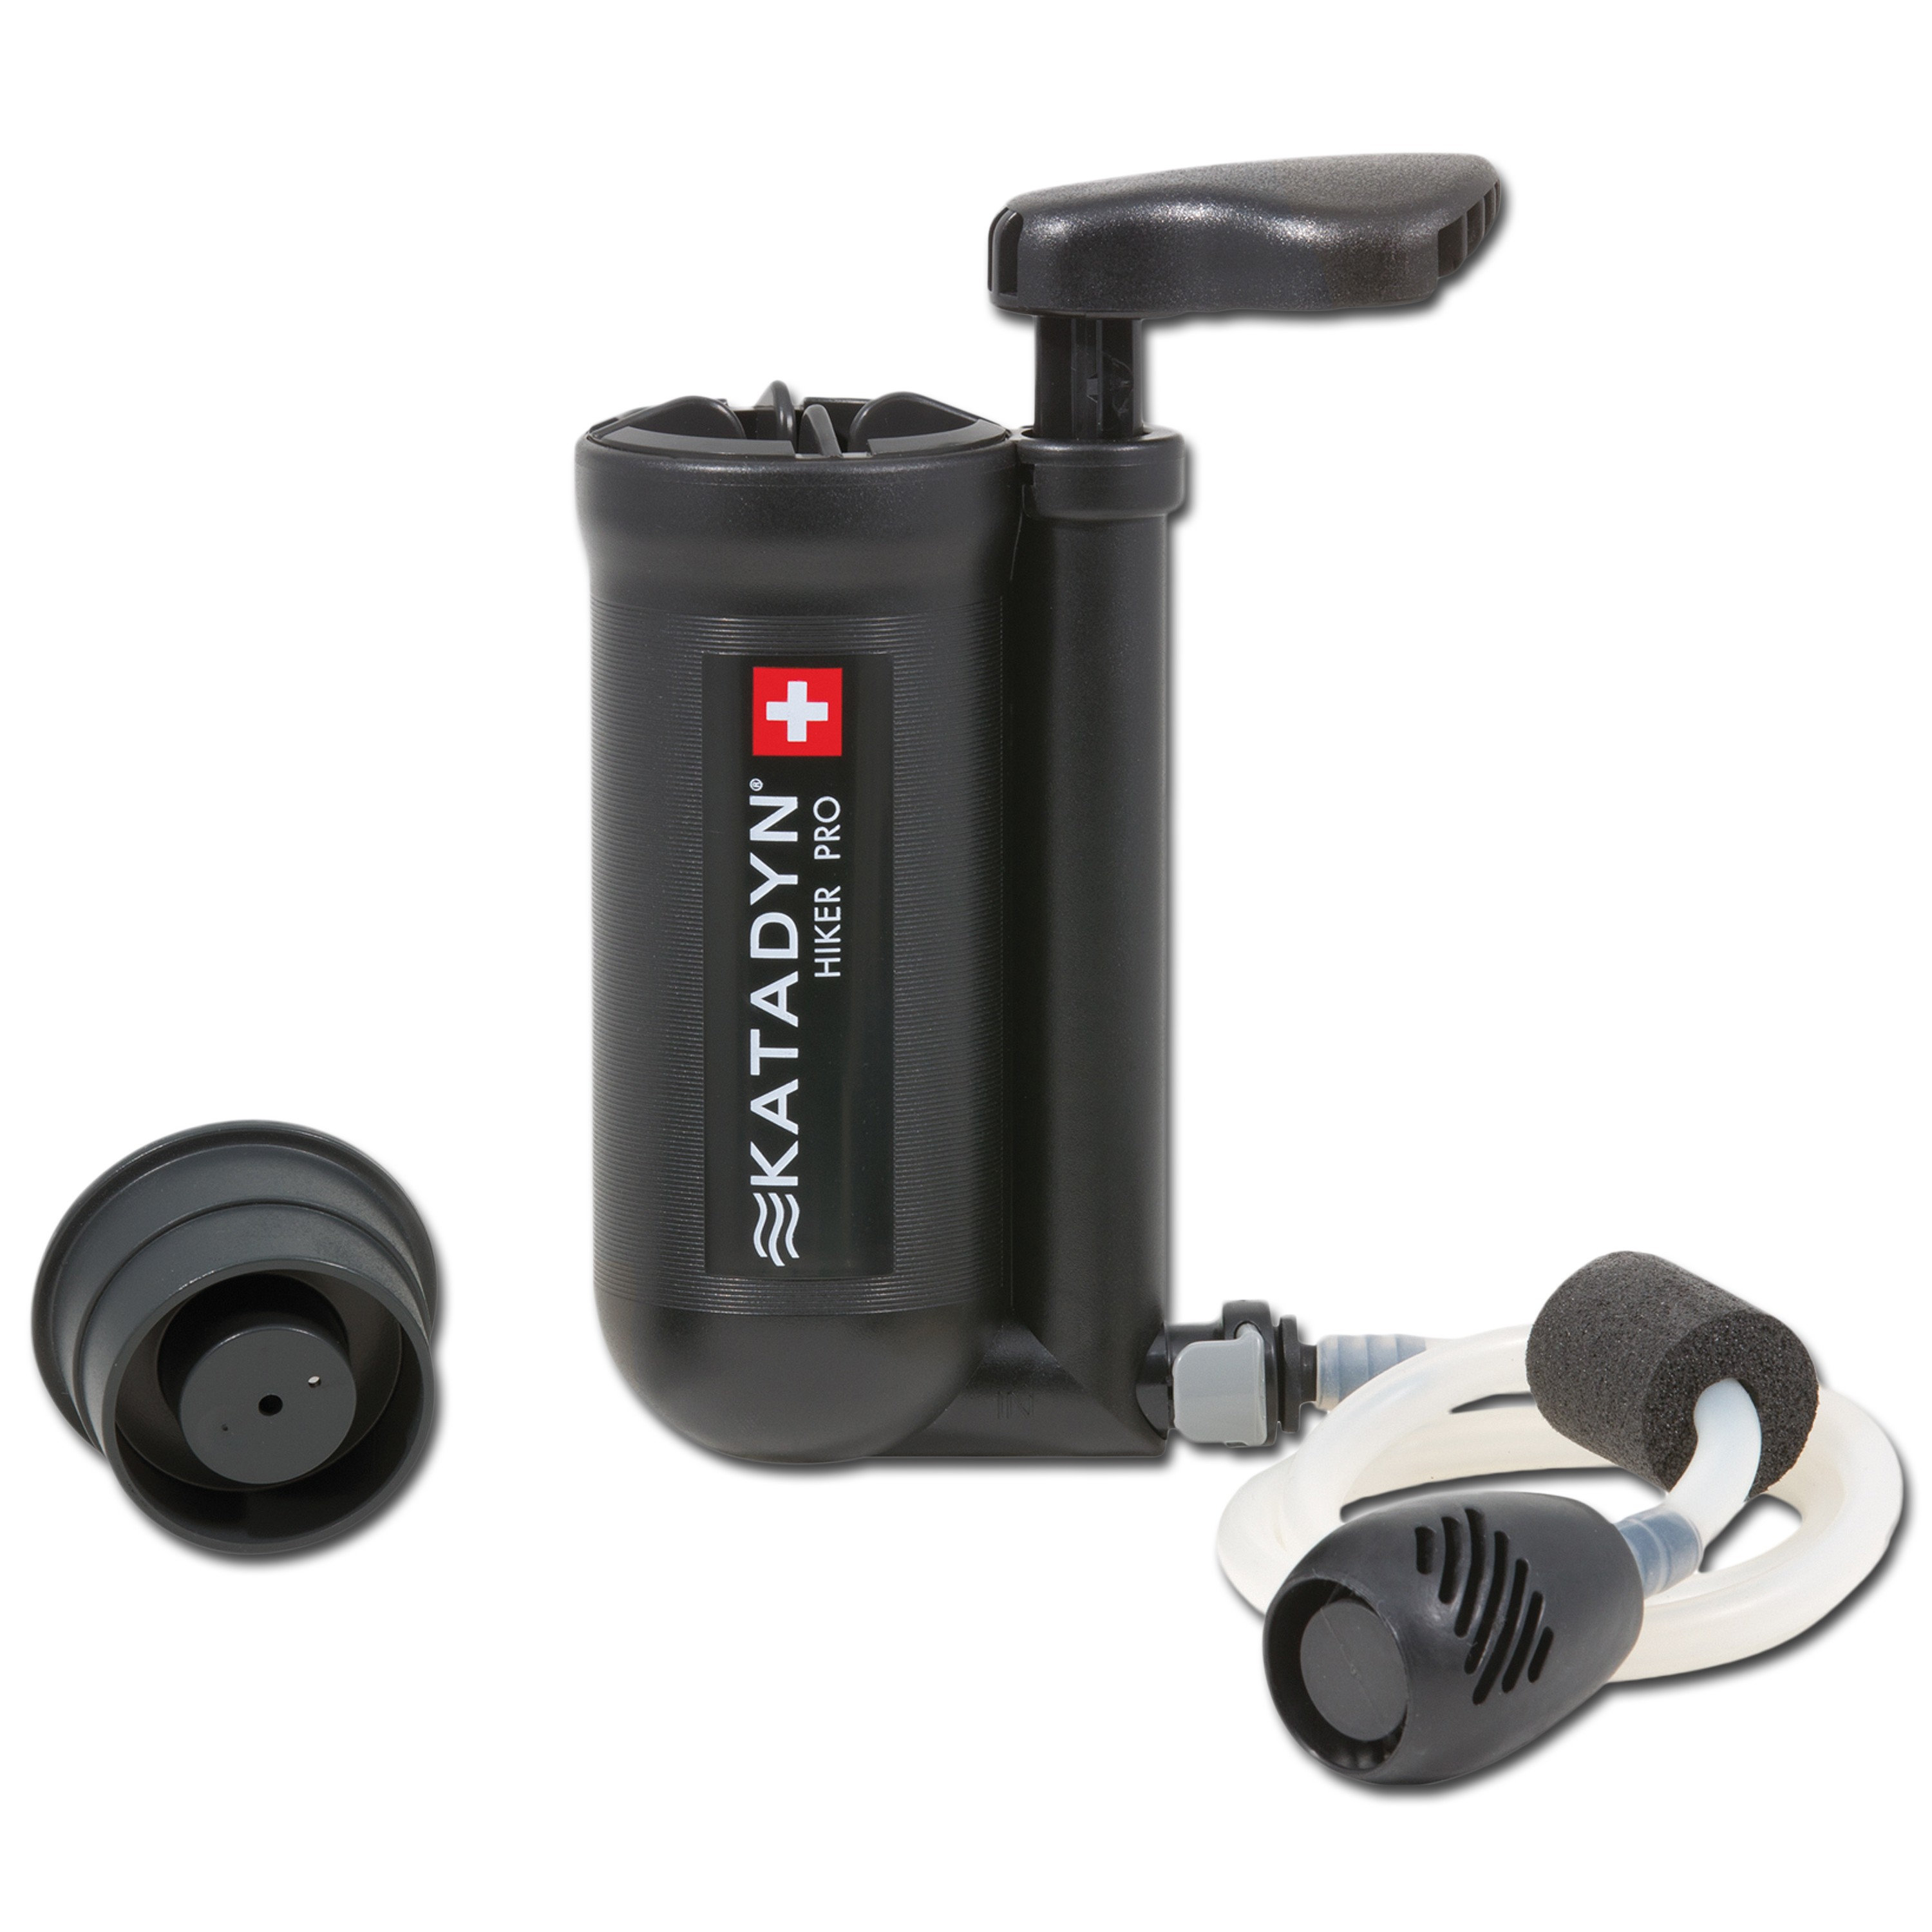 Katadyn Water Filter Hiker Pro